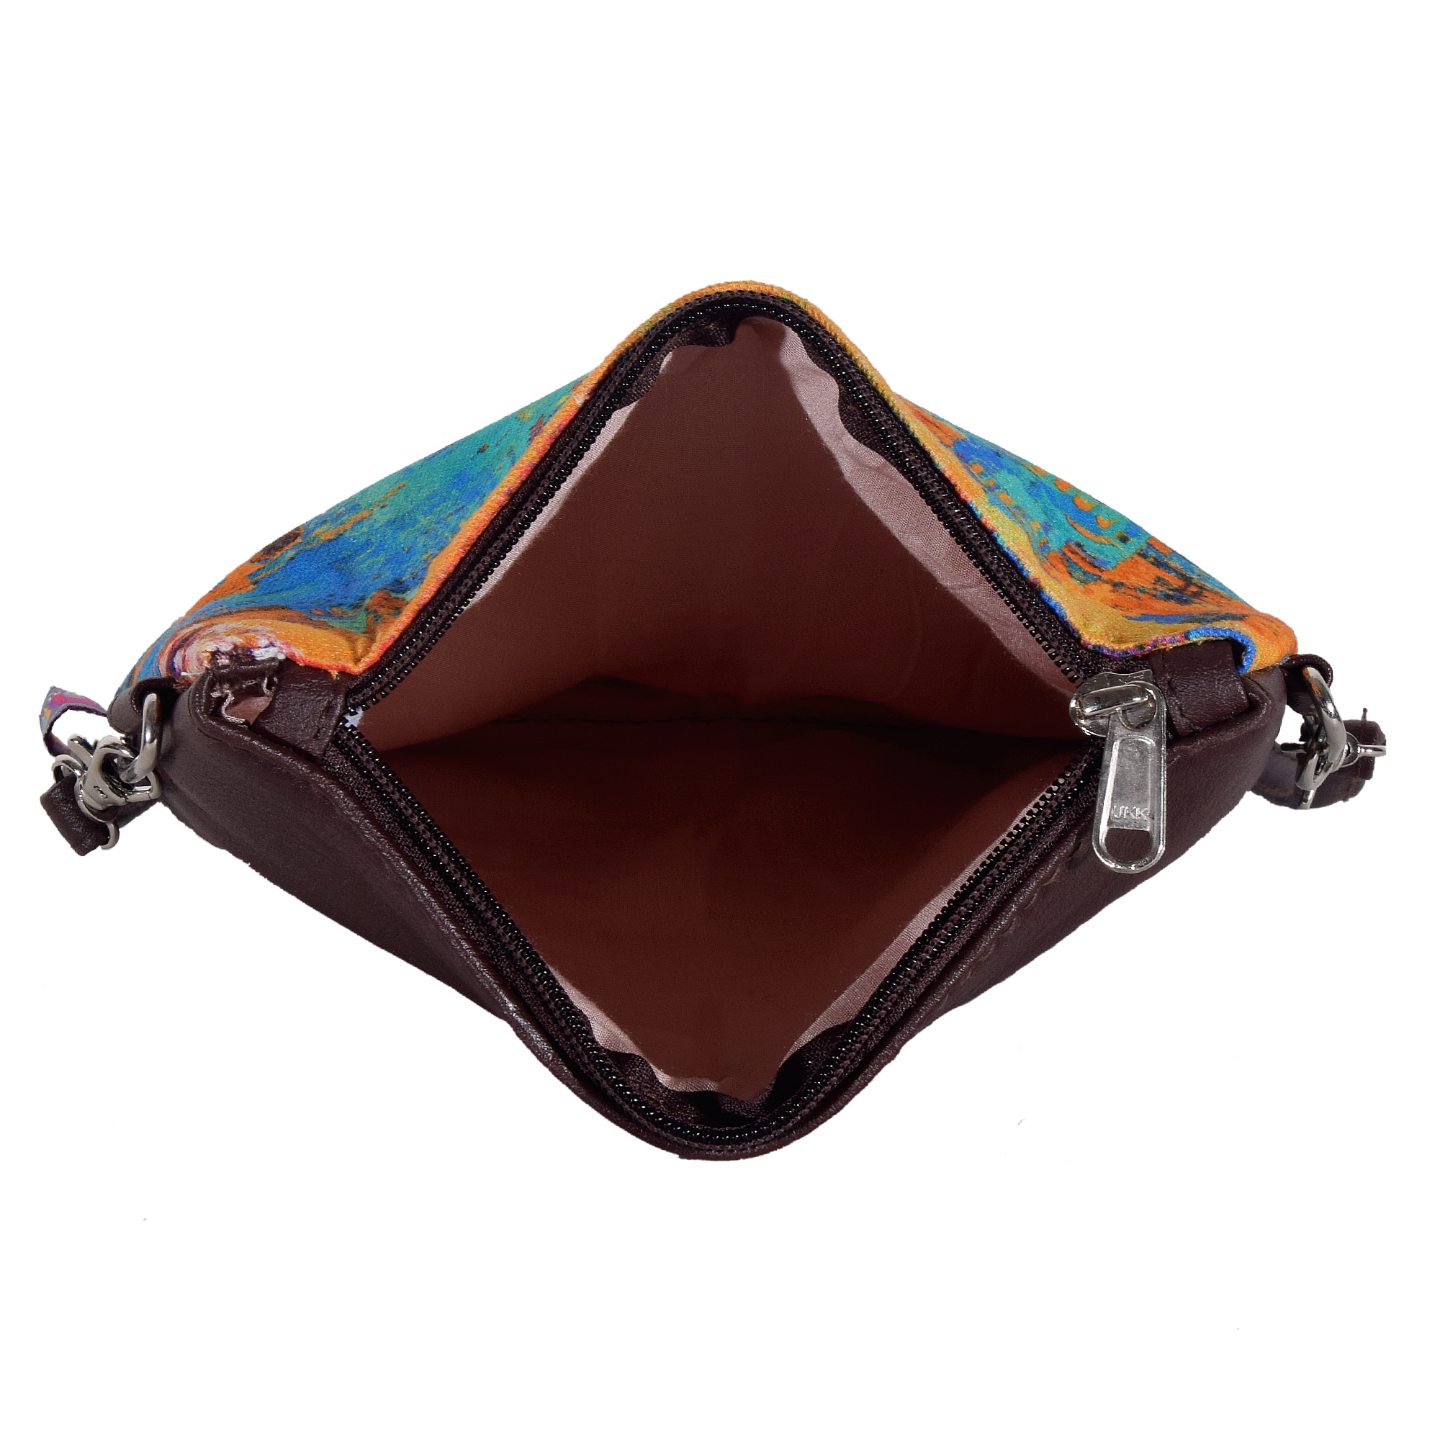 Indian Heritage Small Sling Bag